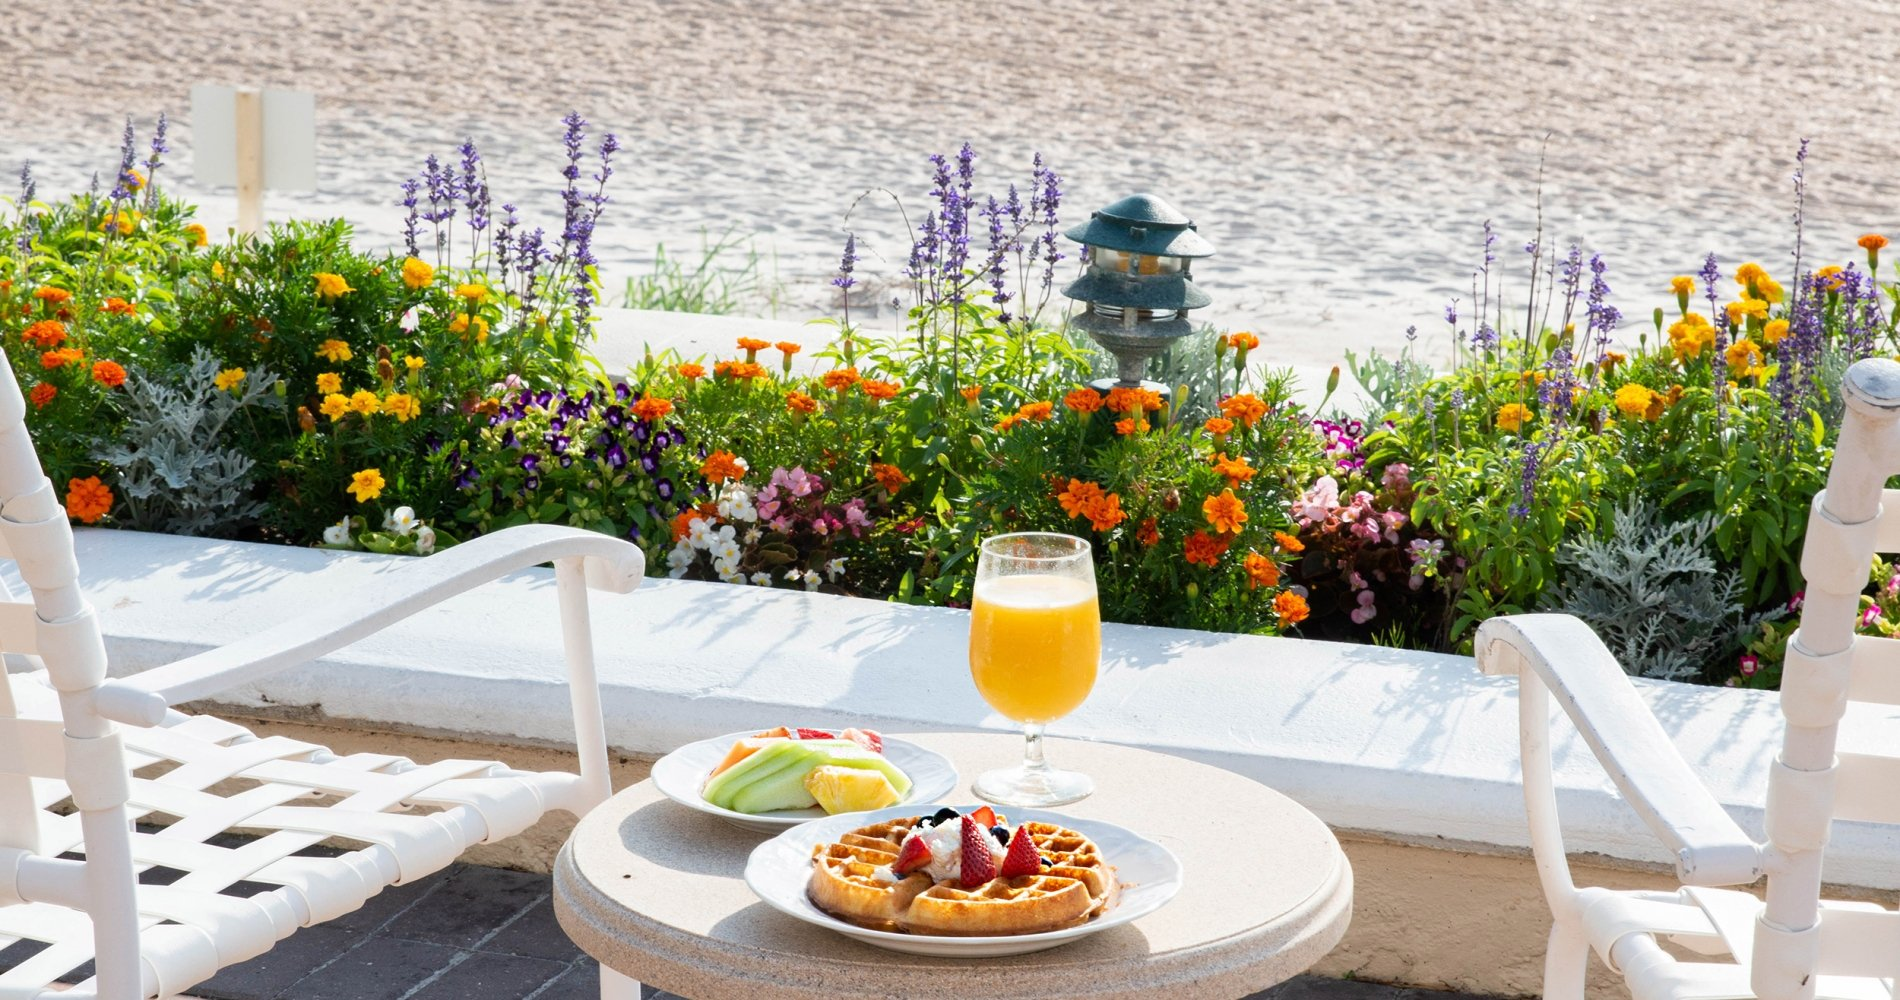 Lodge Beach Side Breakfast